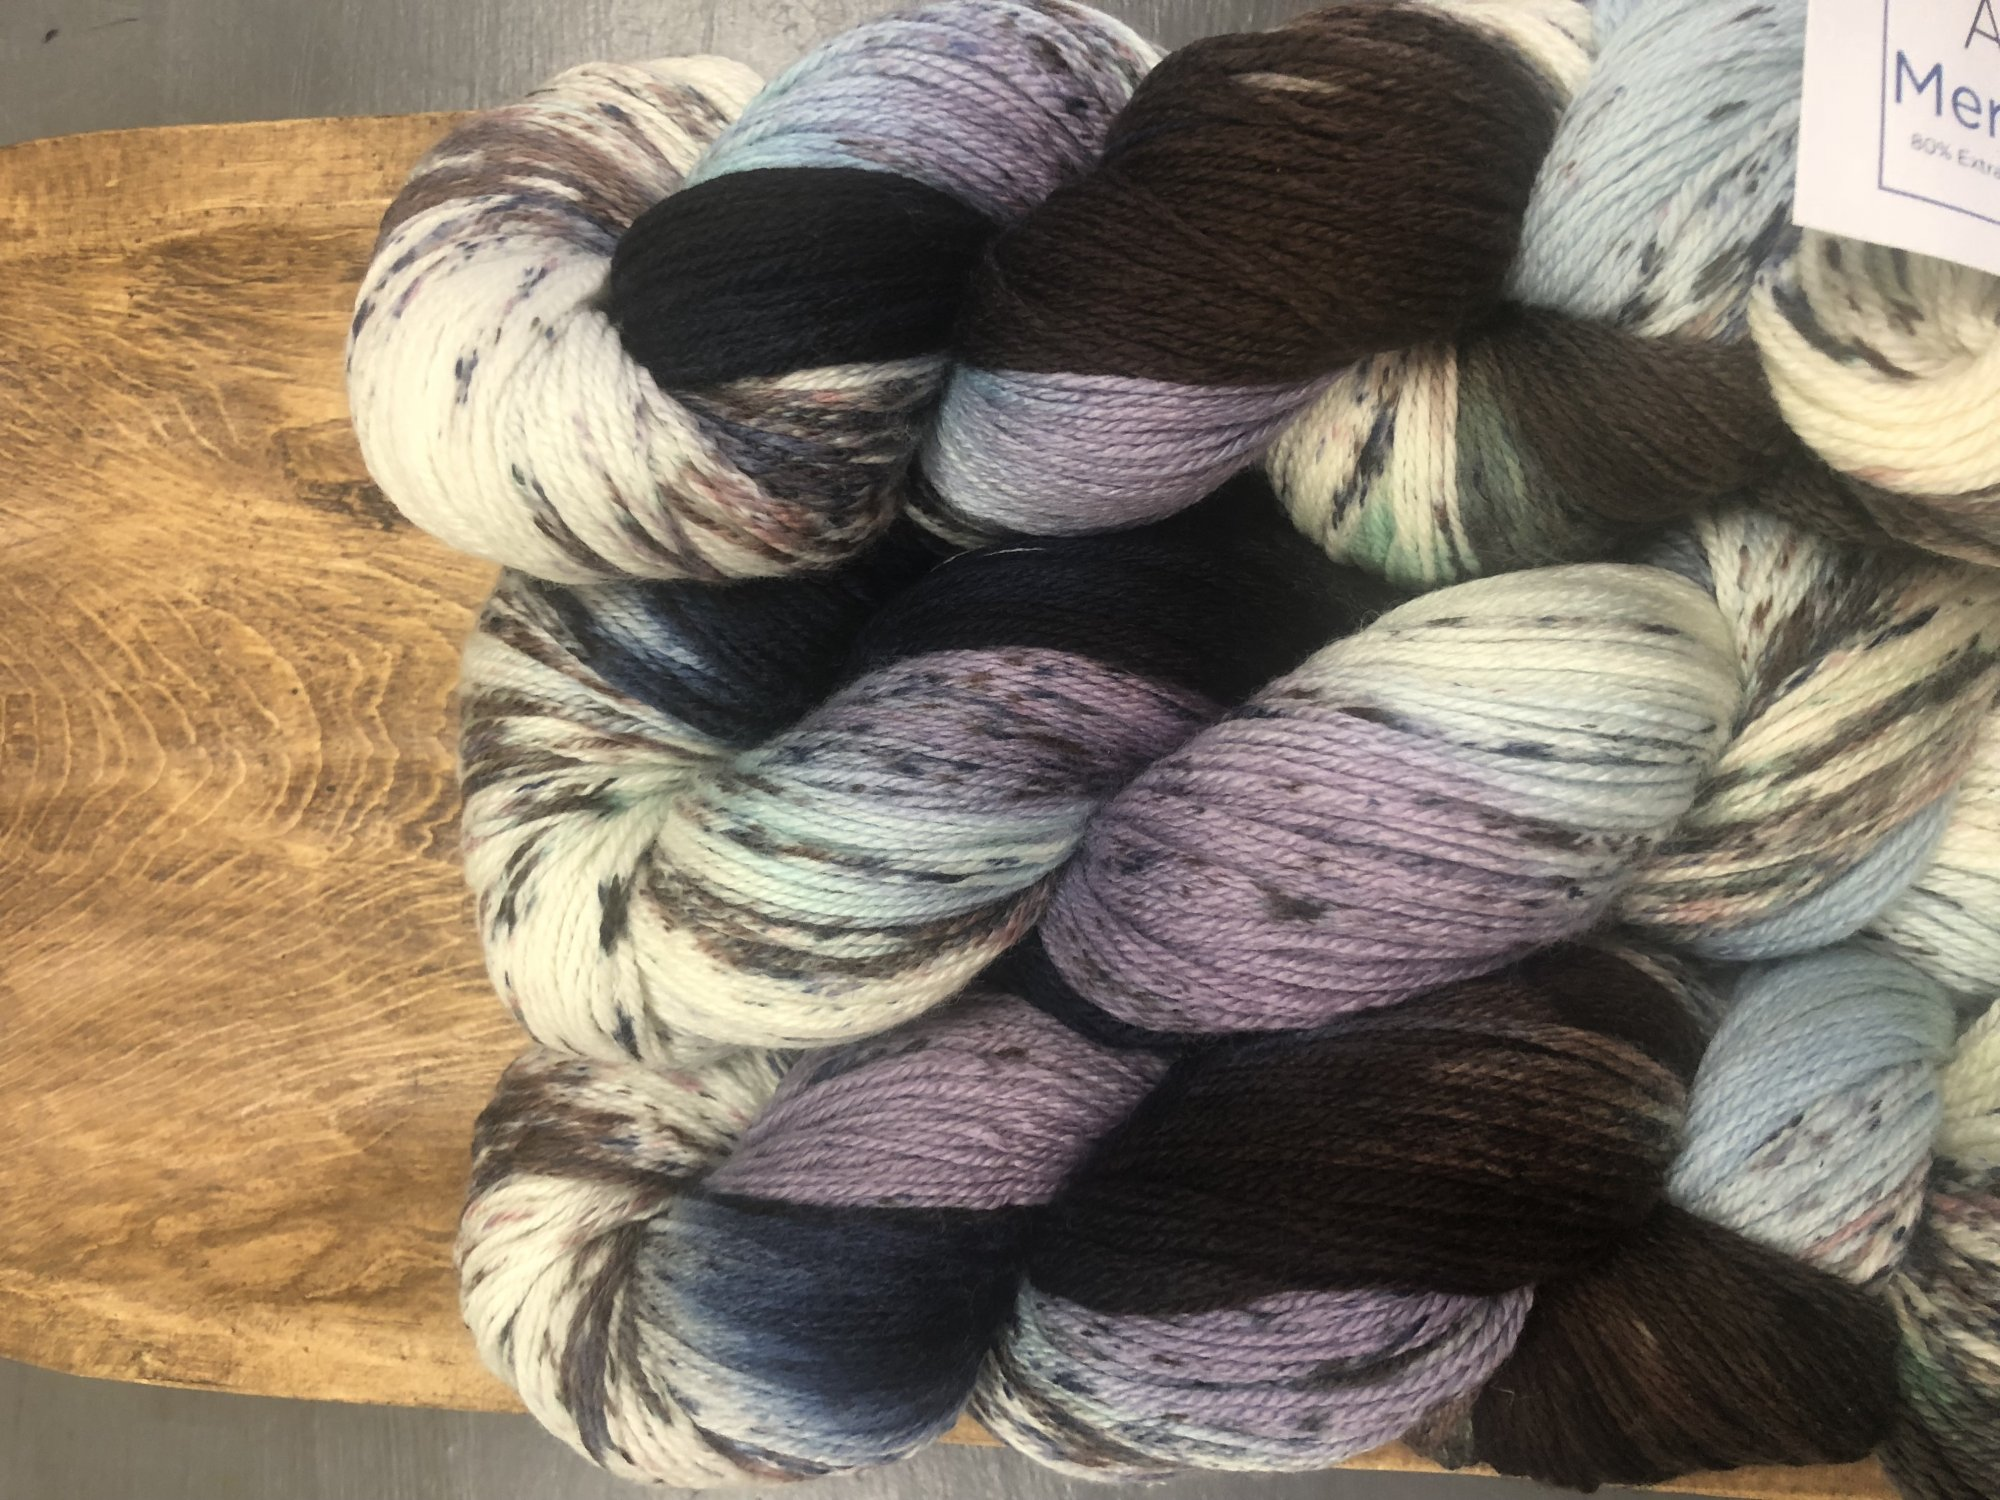 Knitique Exclusives from Artyarns